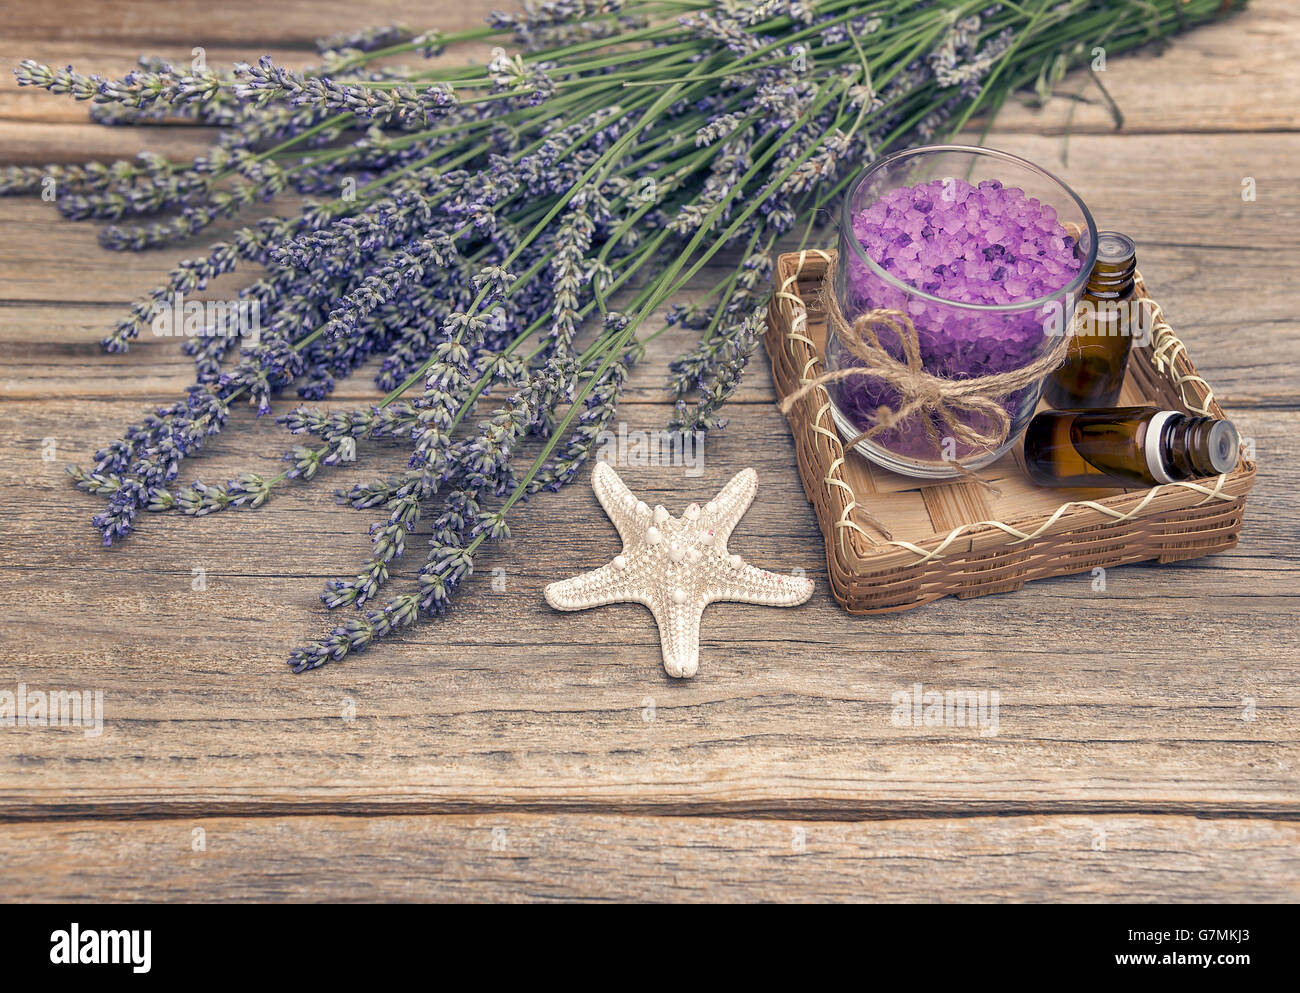 Lavender and sea salt on wooden boards. Still life. Stock Photo